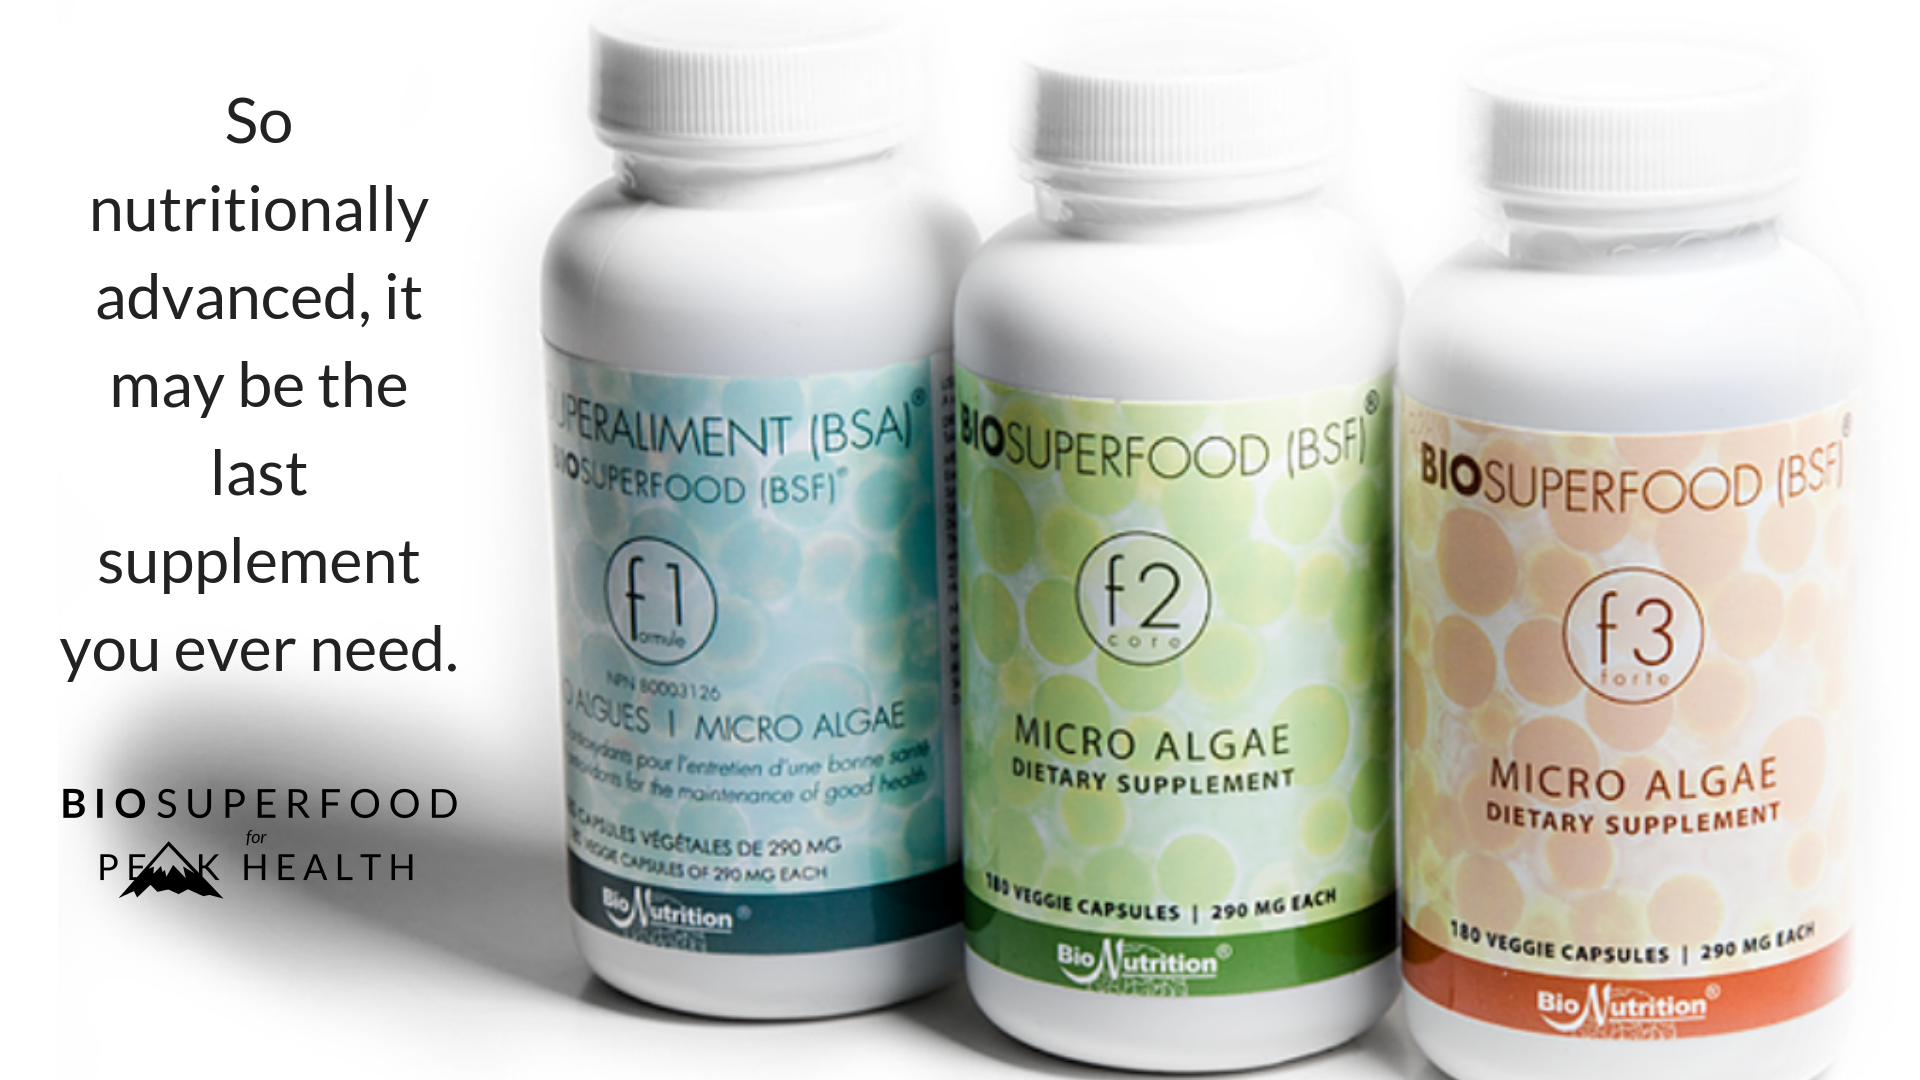 BioSuperfood bio-algae concentrates are so nutritionally advanced, they may be the last supplement you ever need.